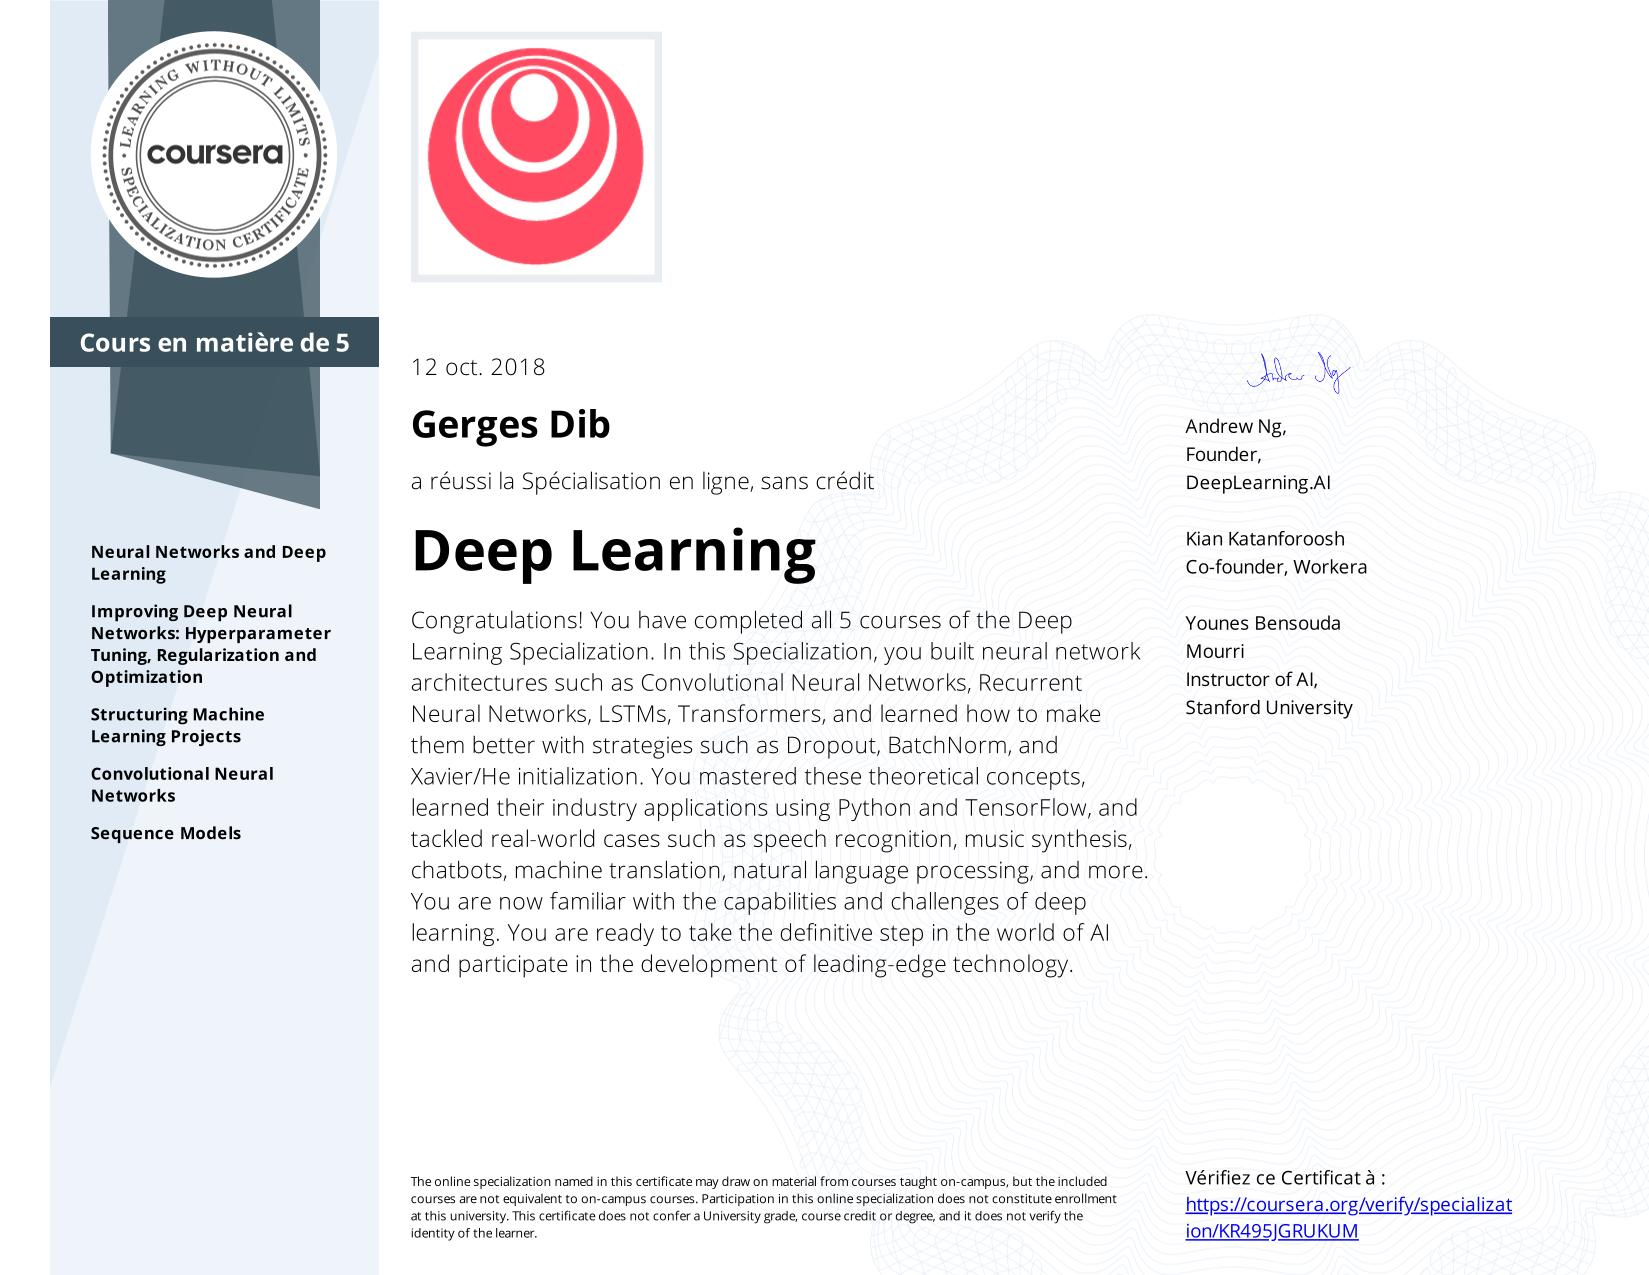 View certificate for Gerges Dib, Deep Learning, offered through Coursera. The Deep Learning Specialization is designed to prepare learners to participate in the development of cutting-edge AI technology, and to understand the capability, the challenges, and the consequences of the rise of deep learning. Through five interconnected courses, learners develop a profound knowledge of the hottest AI algorithms, mastering deep learning from its foundations (neural networks) to its industry applications (Computer Vision, Natural Language Processing, Speech Recognition, etc.).